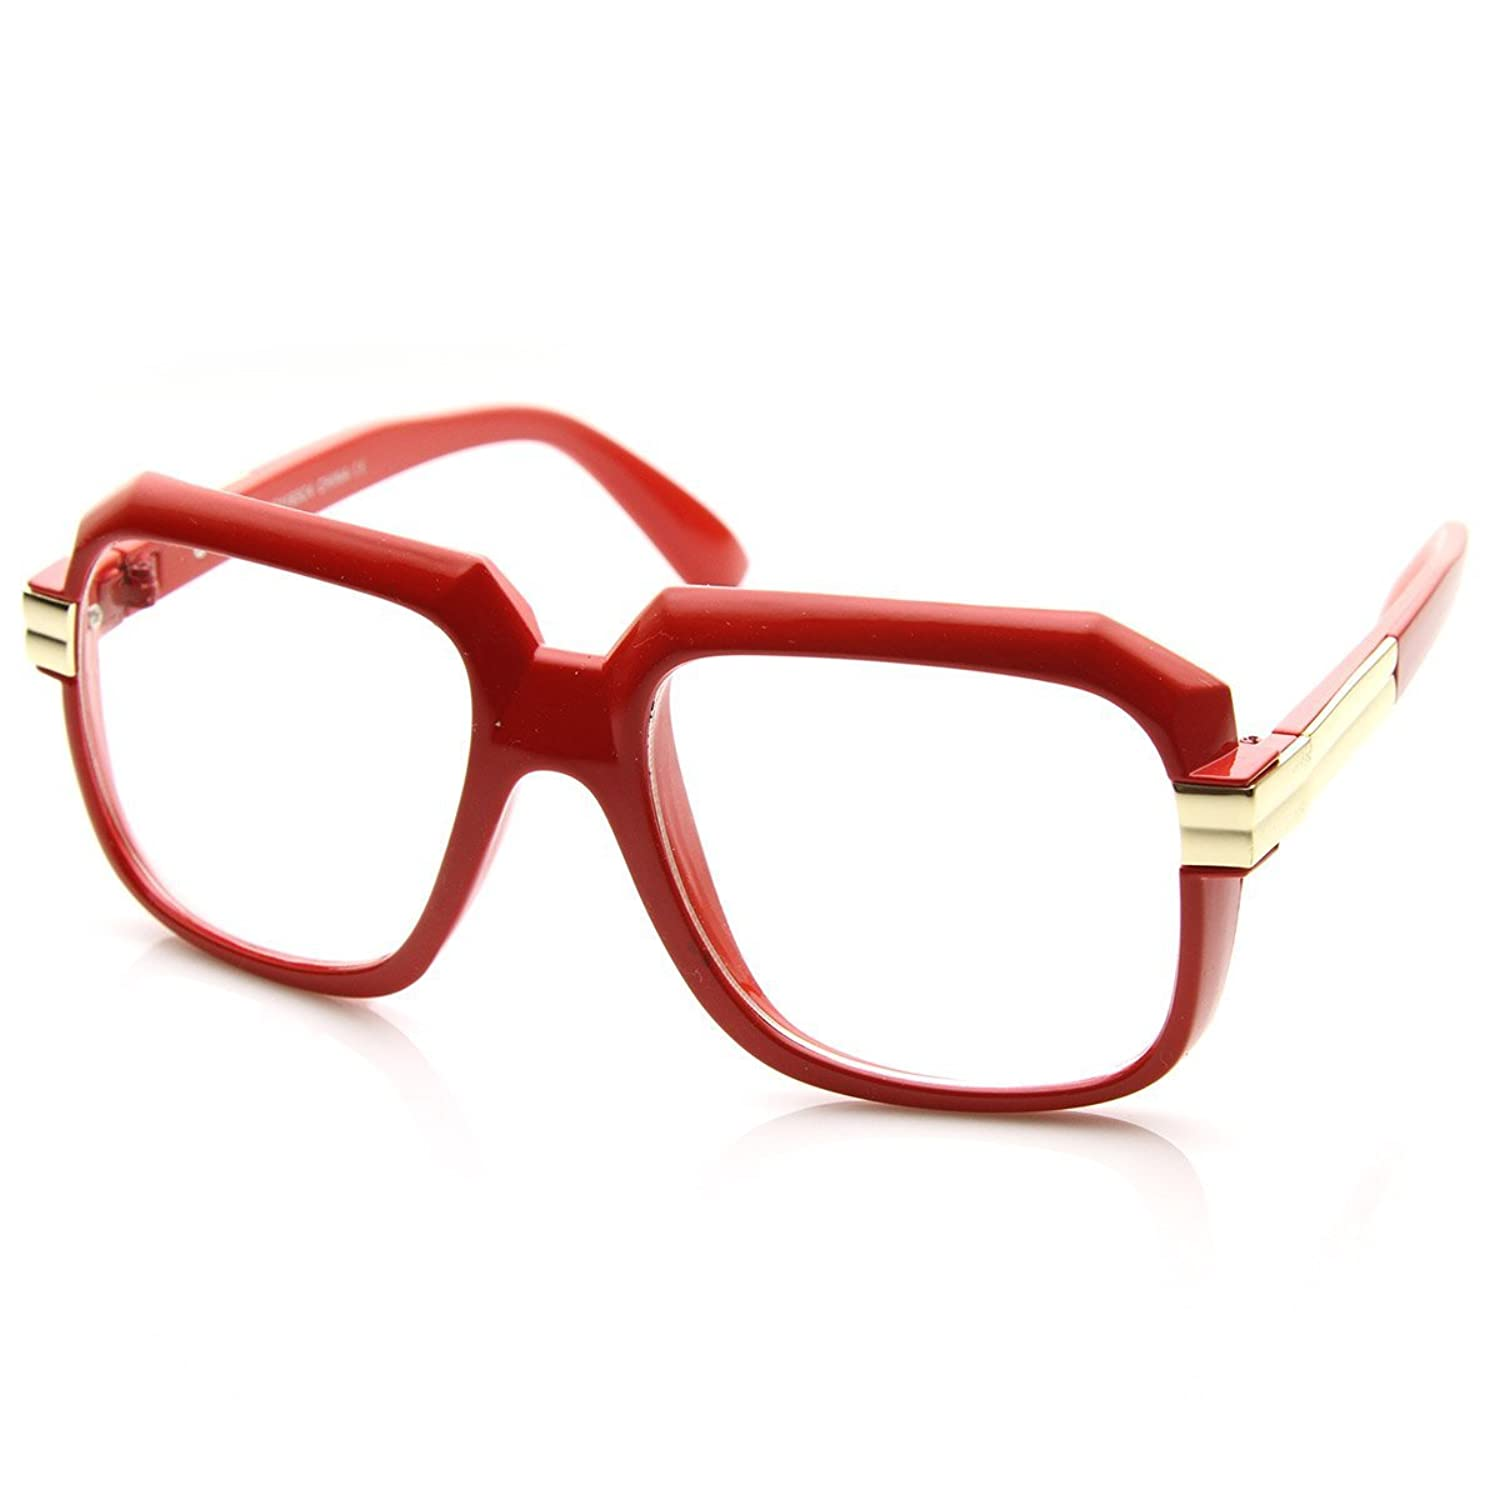 chic AStyles Old School Oversized Rectangular Squared Hip Hop Nerdy ...